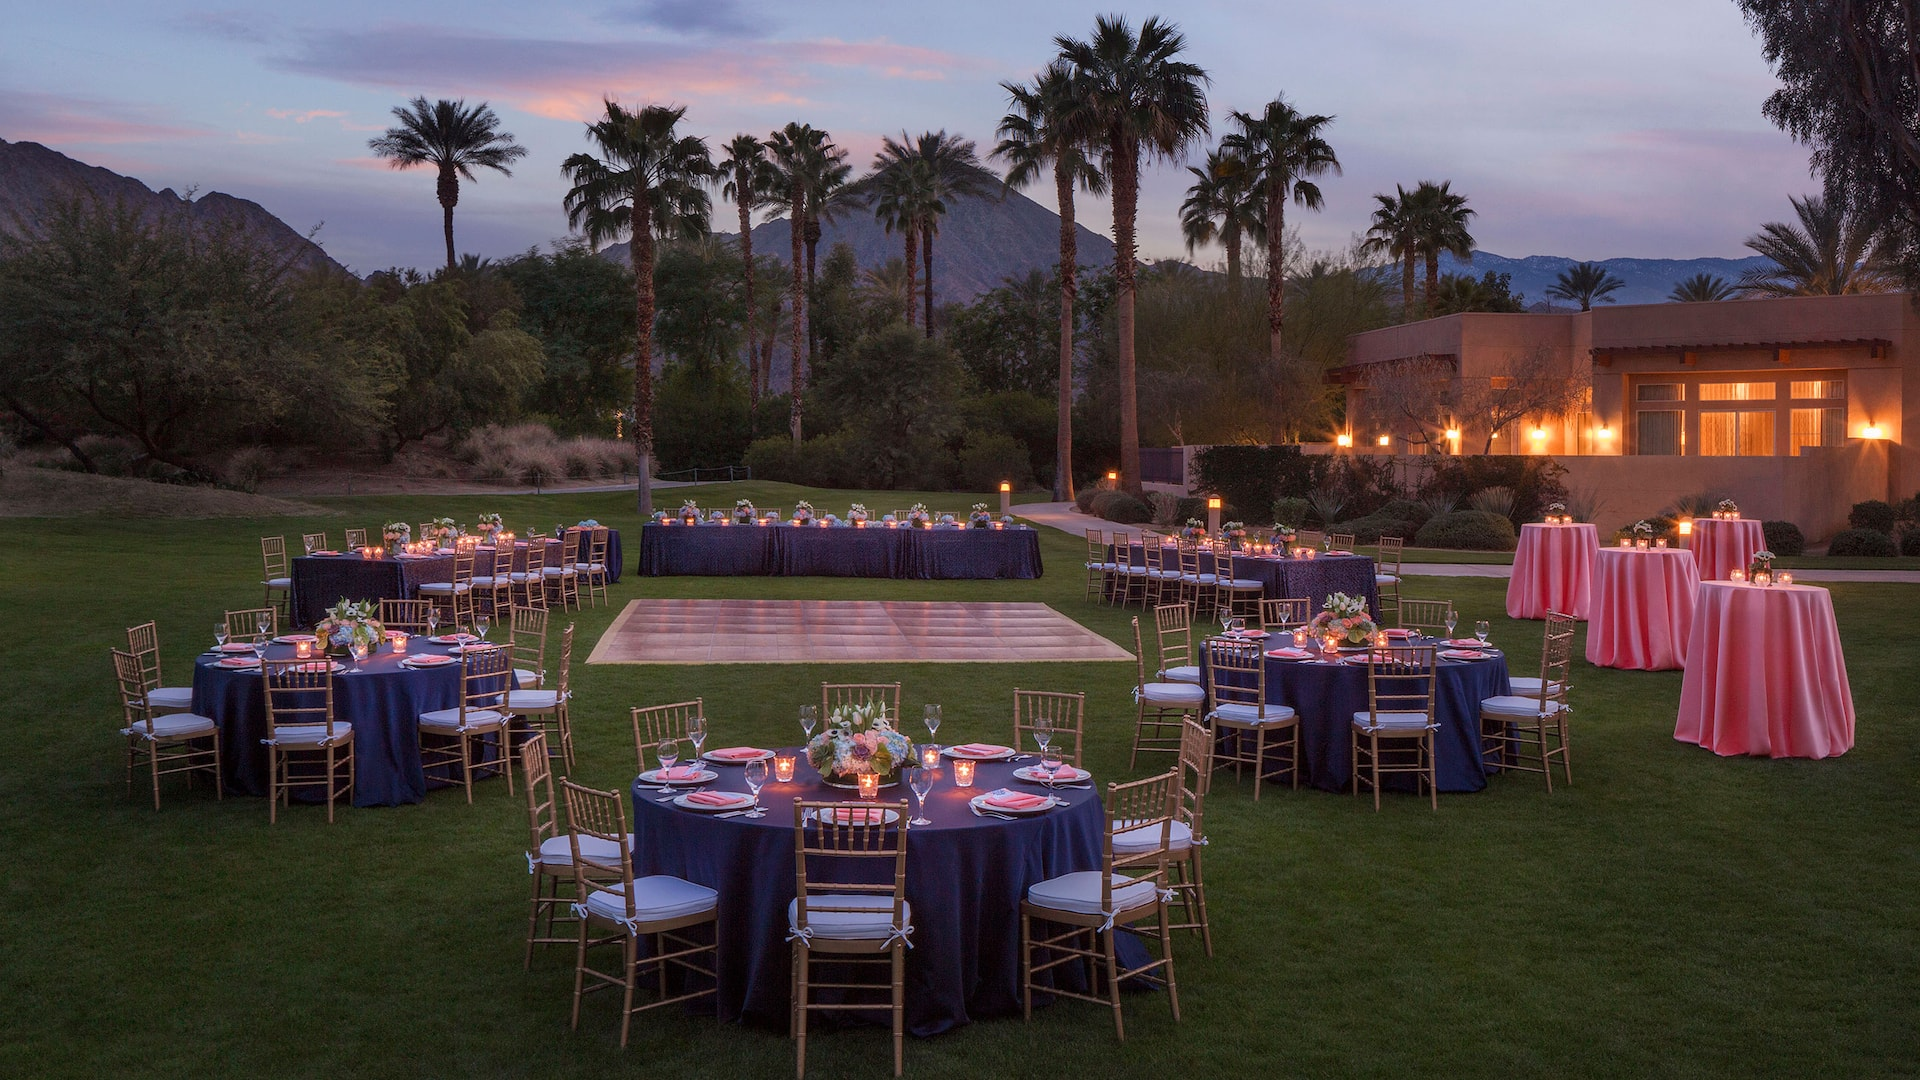 A beautifully decorated outdoor wedding venue at Palm Springs